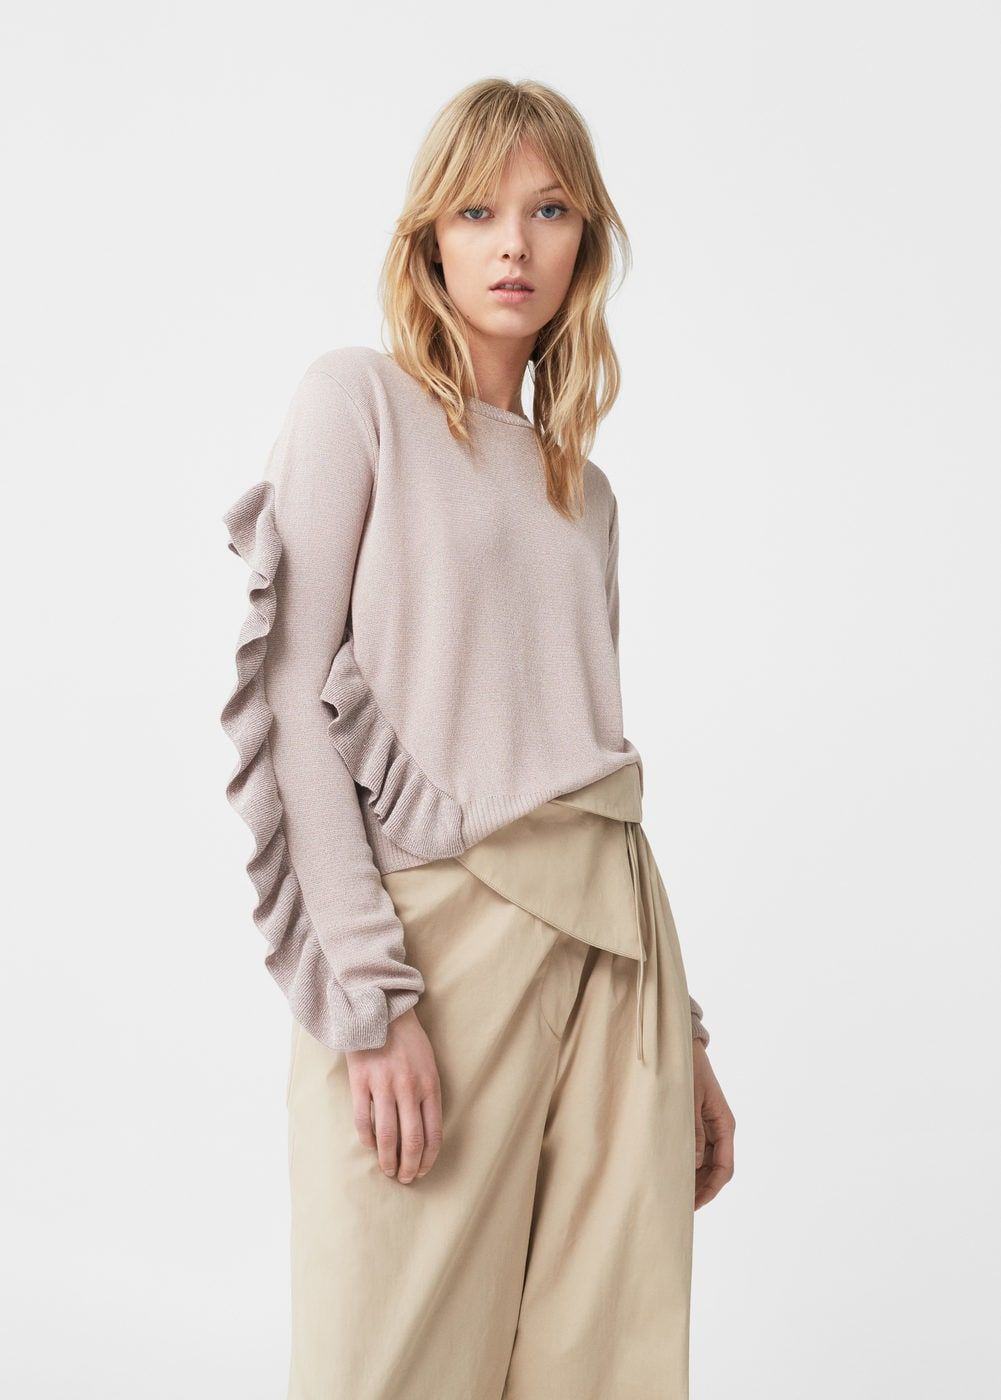 2eb2a2dc47ae Decortive frill detail Fabric with metallic thread Rounded neck Long sleeve  Cable knit finish